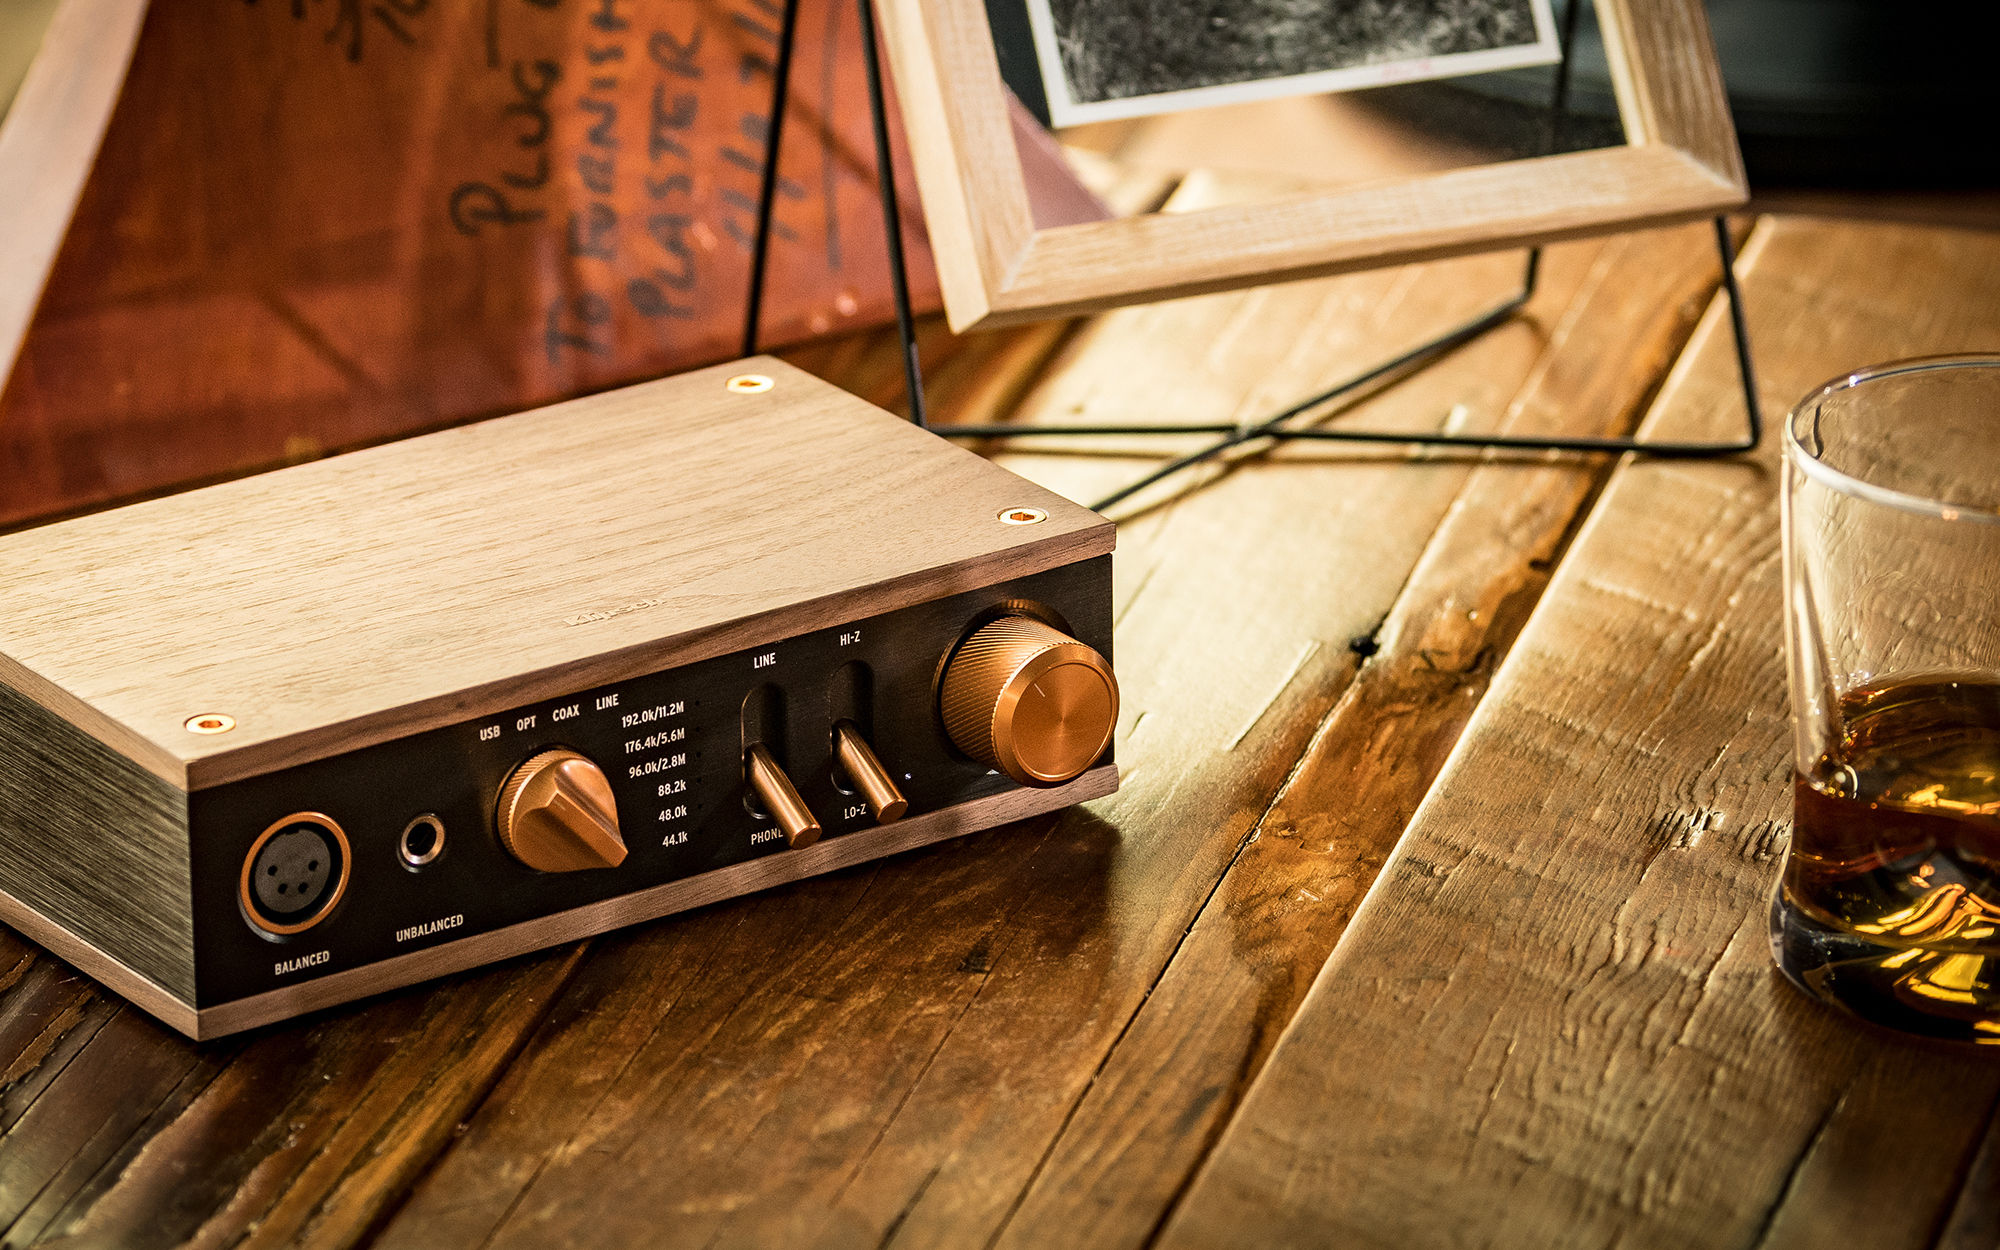 Heritage Headphone Amplifier on wooden table with glass of scotch